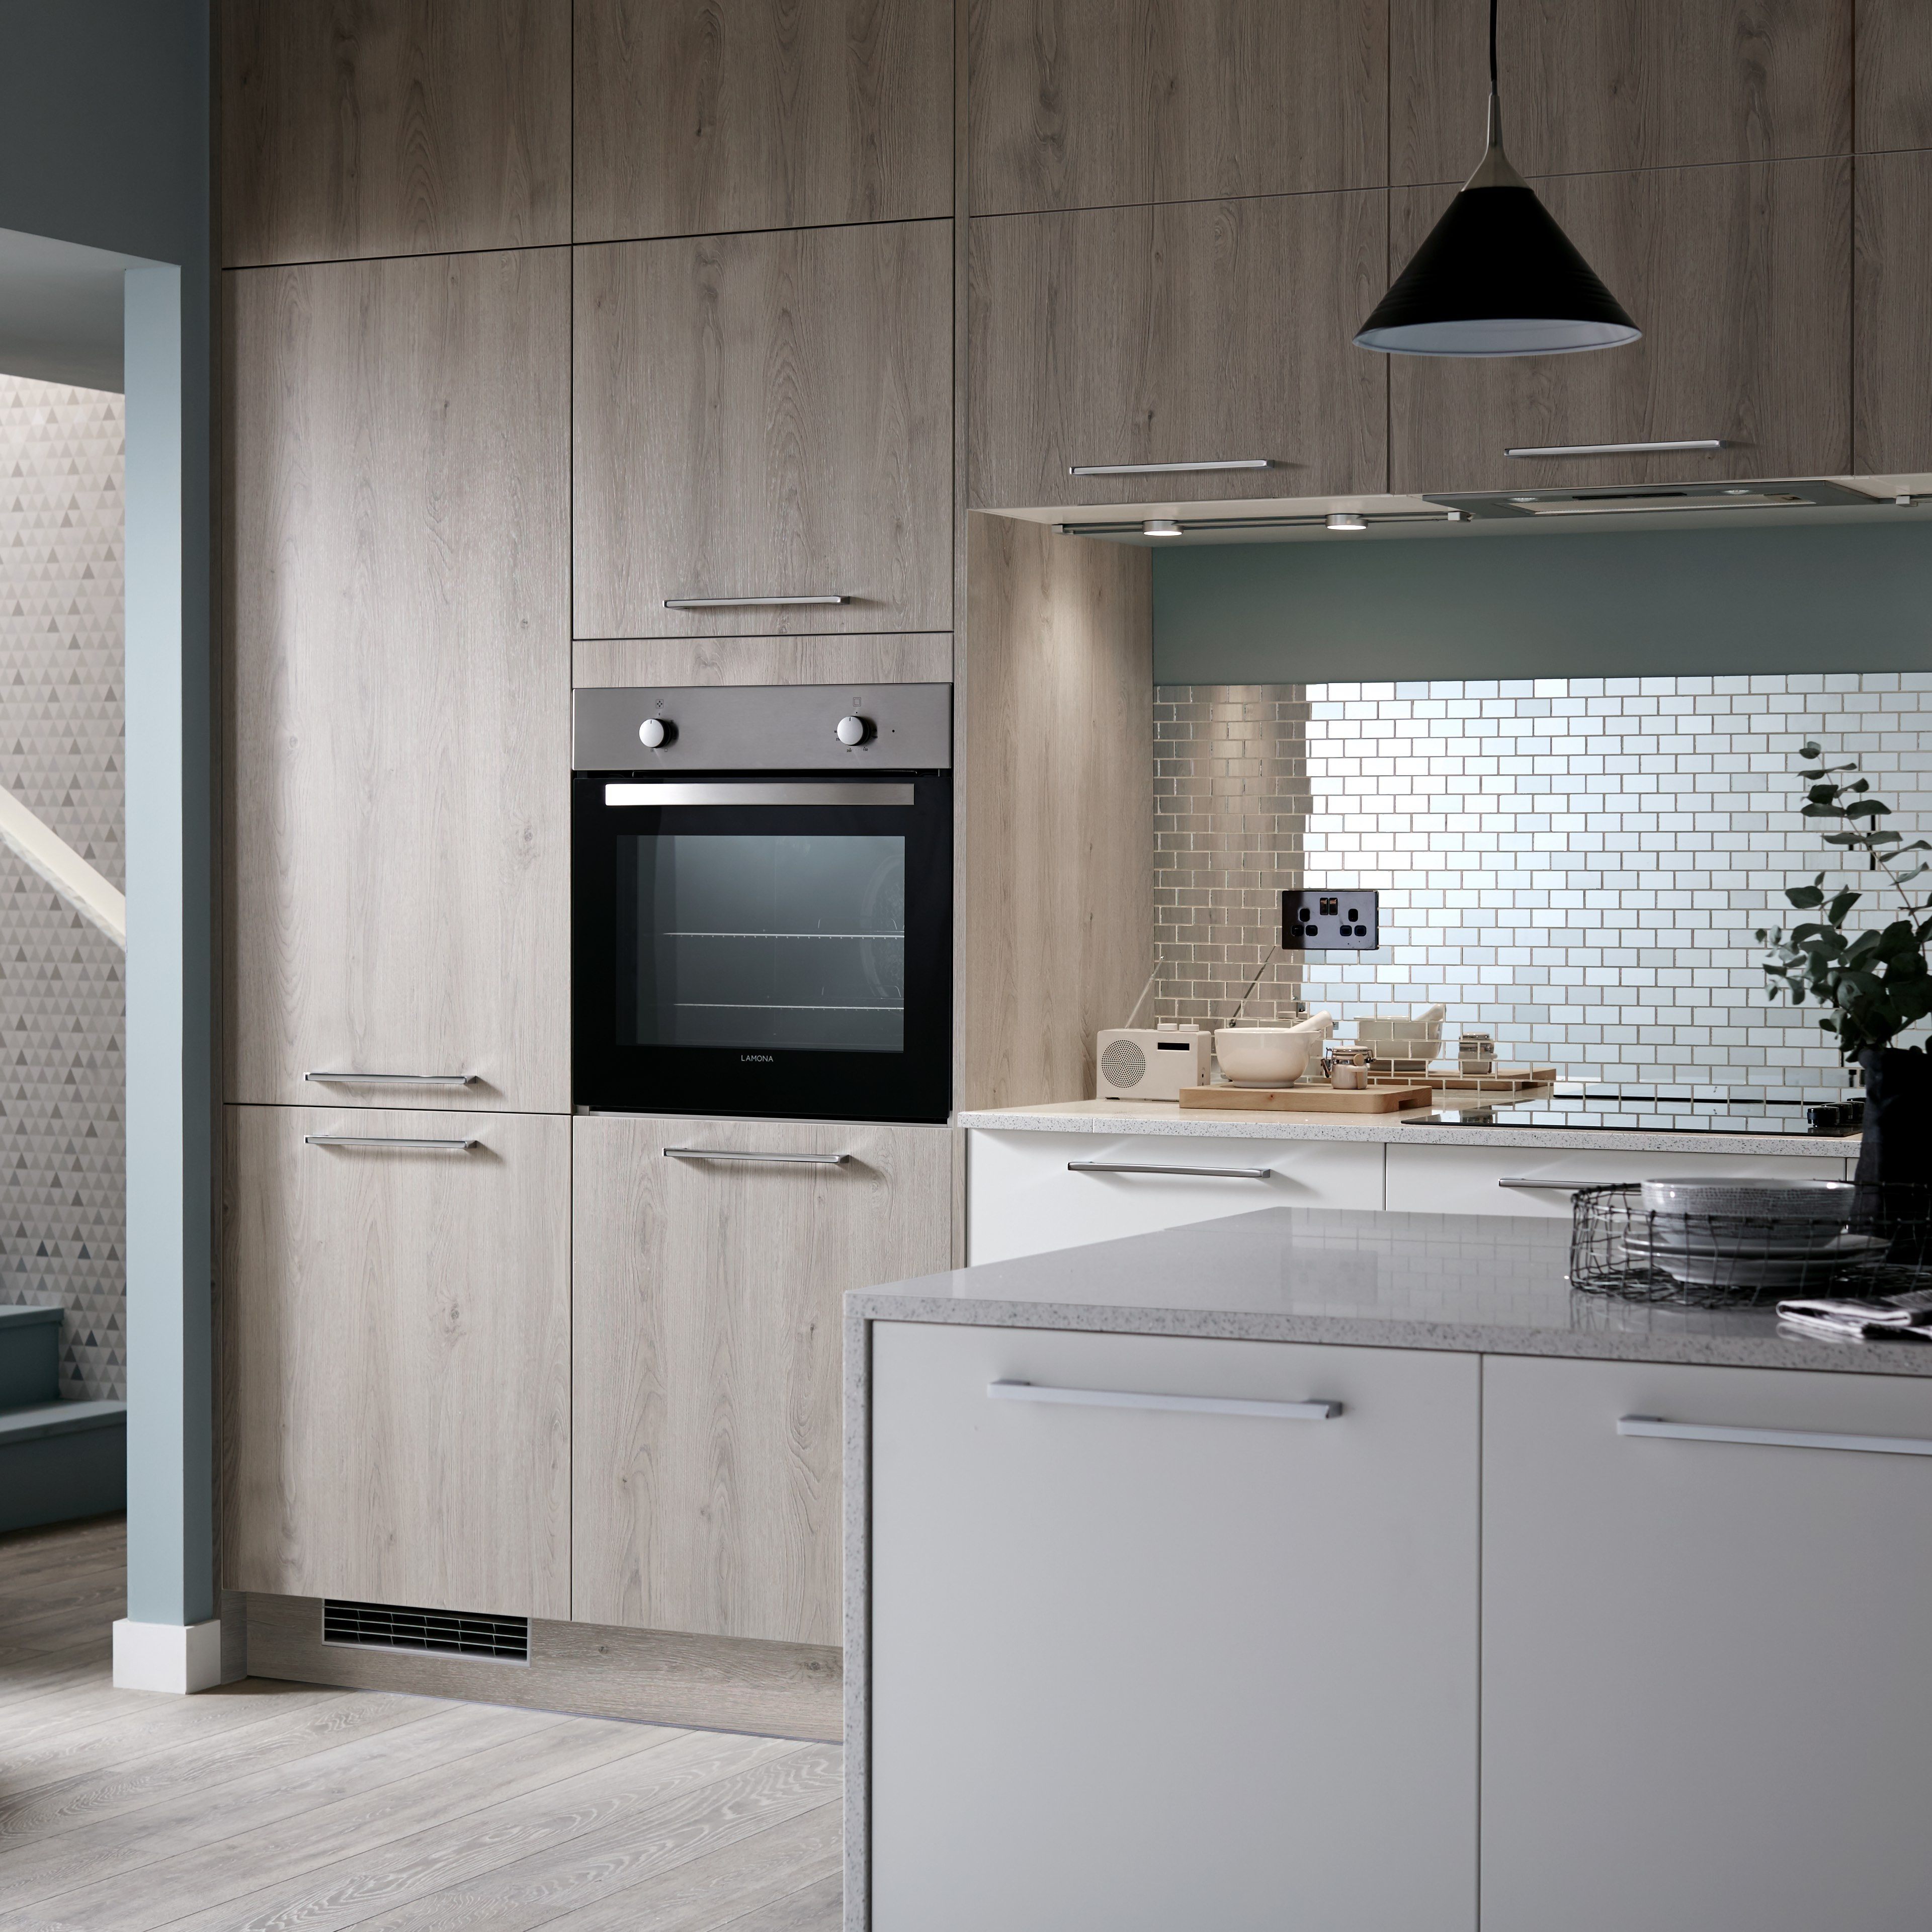 Gray oak kitchen cabinets - A Natural Bright And Welcoming Kitchen Makes A House A Home Our Greenwich Light